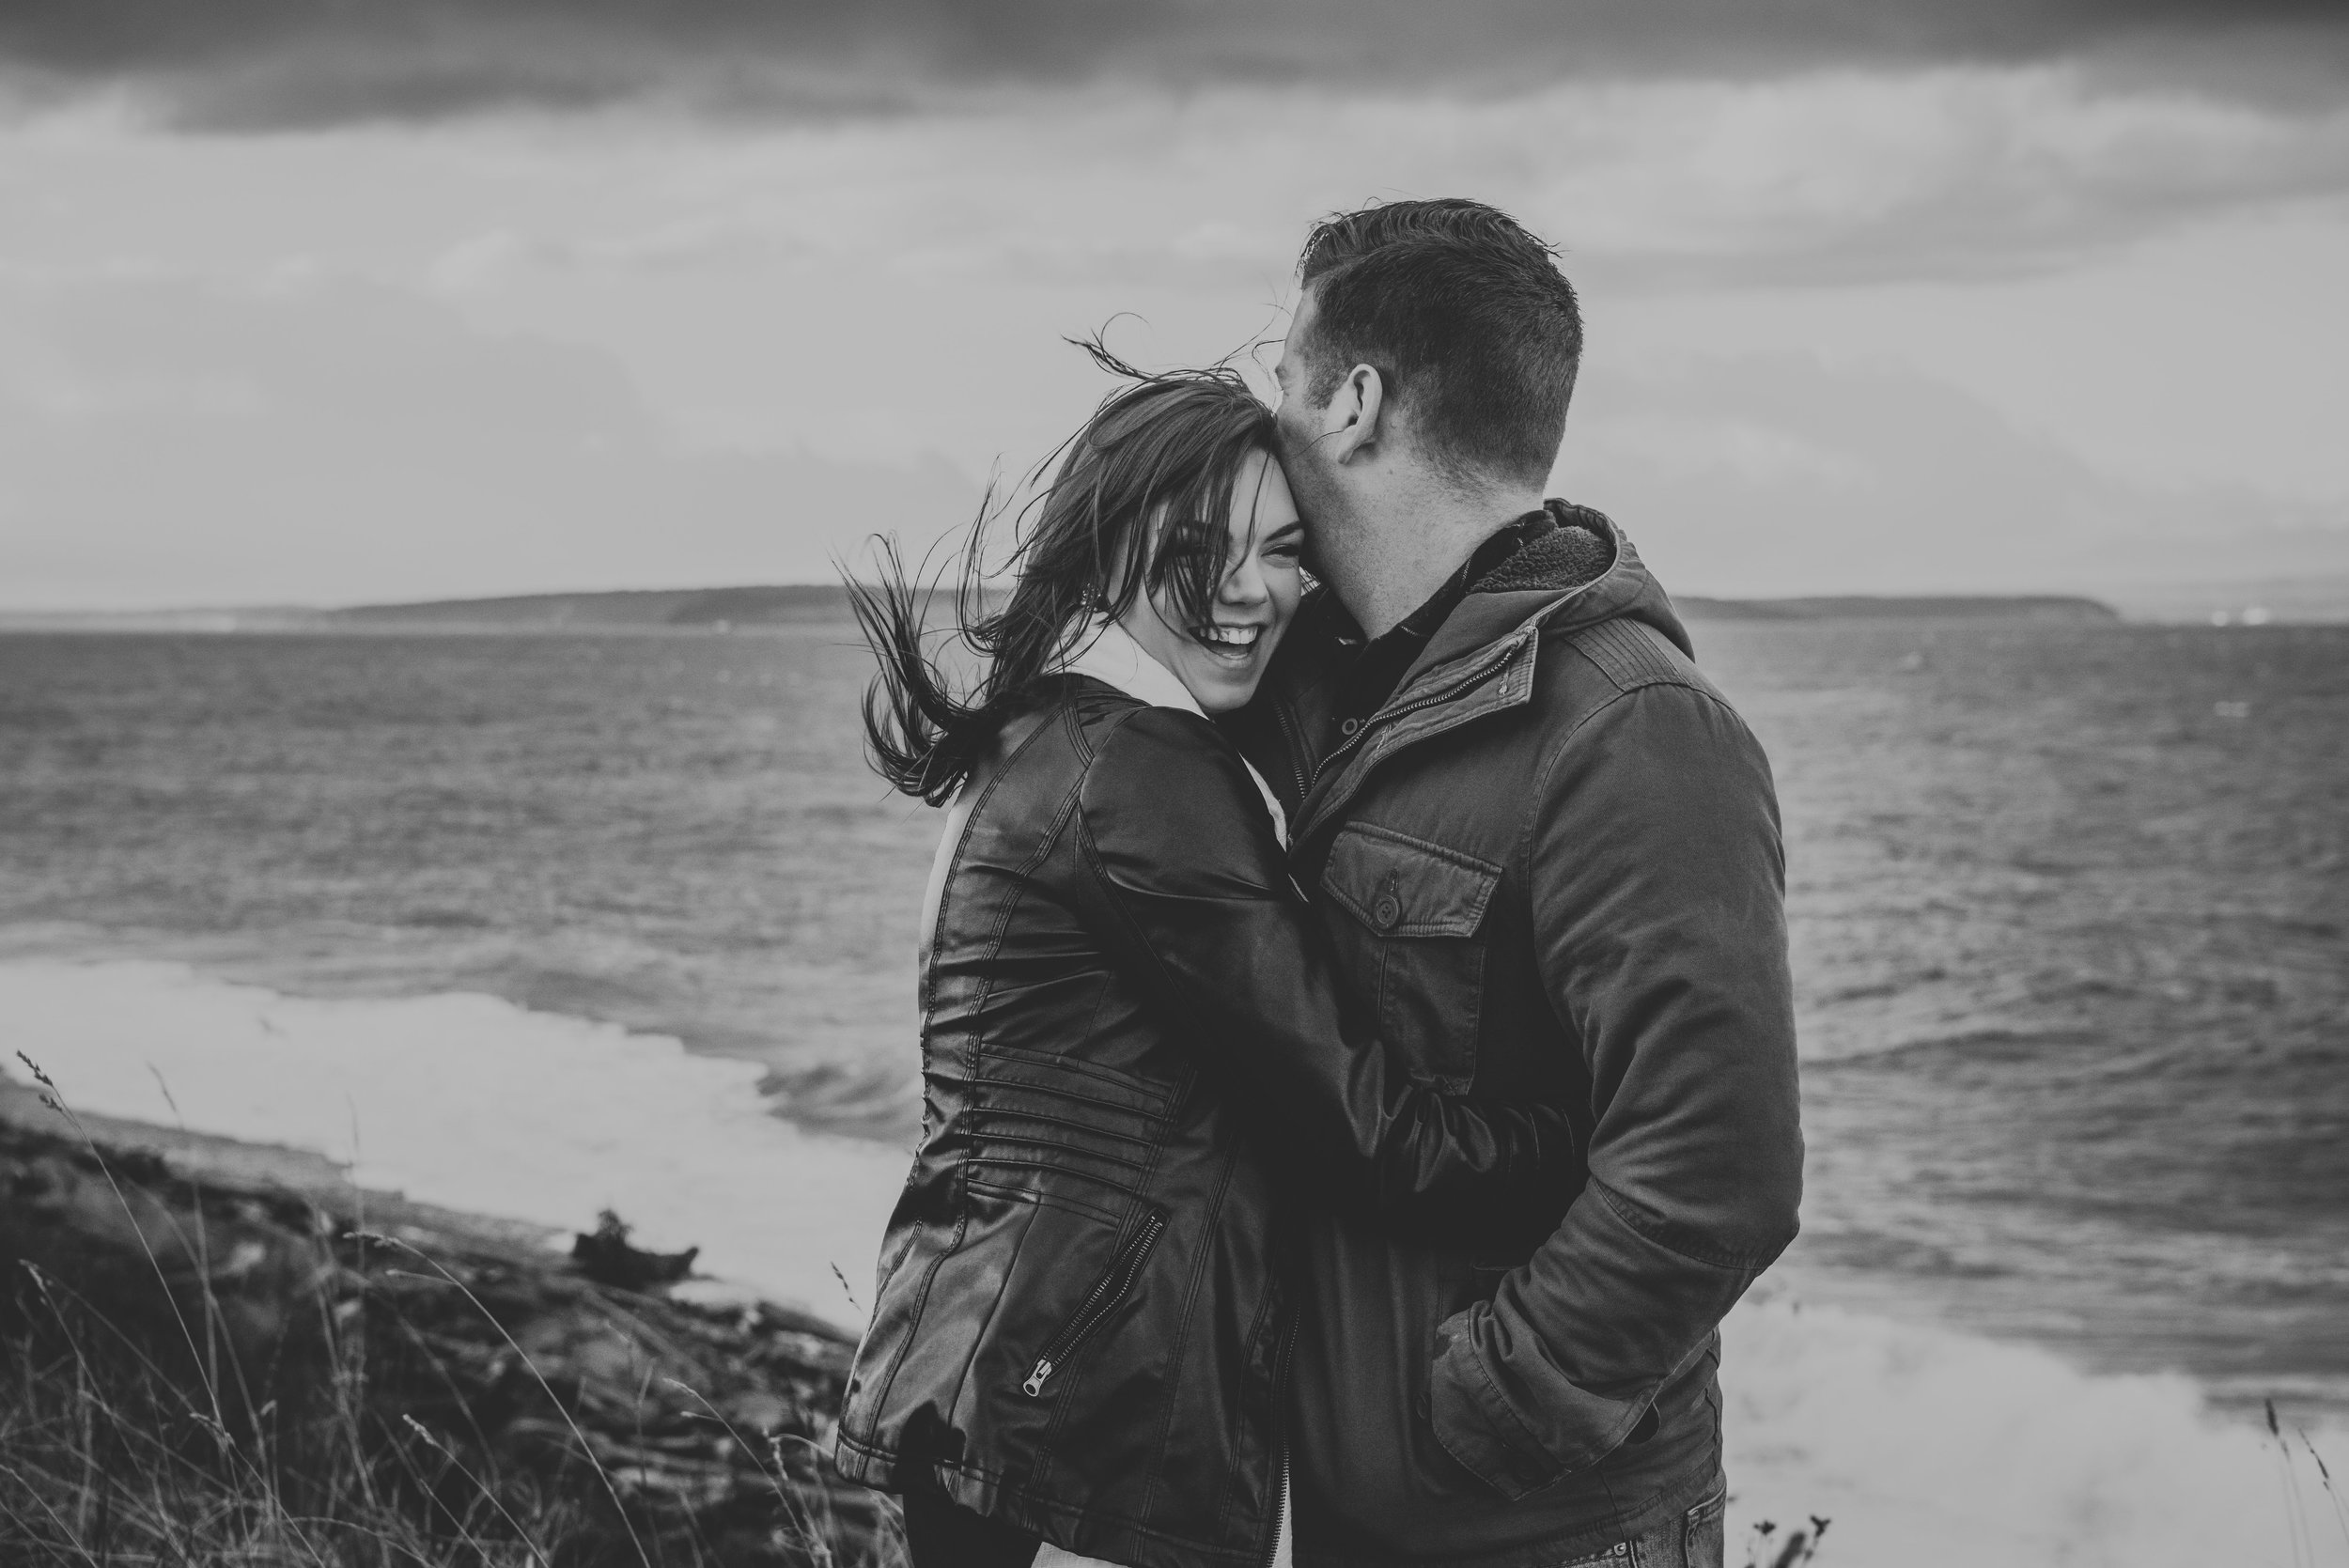 Oak-Harbor-Couples-Photographer (4 of 17).jpg